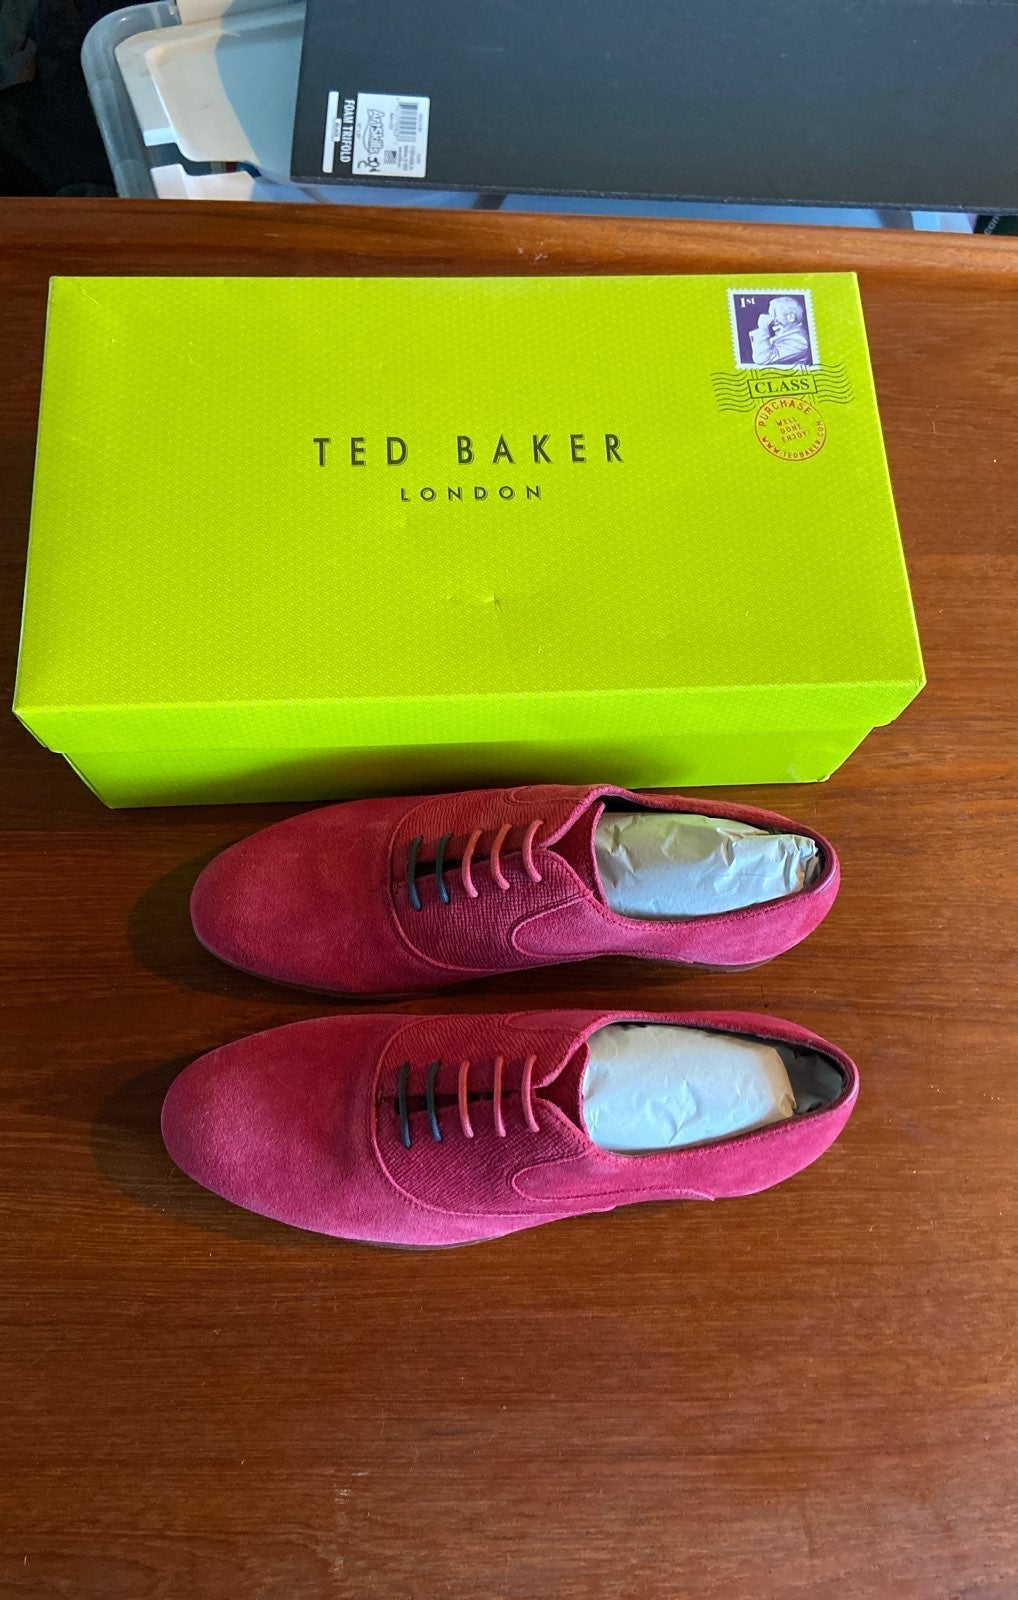 Ted Baker NEW pink suede shoes sz 8